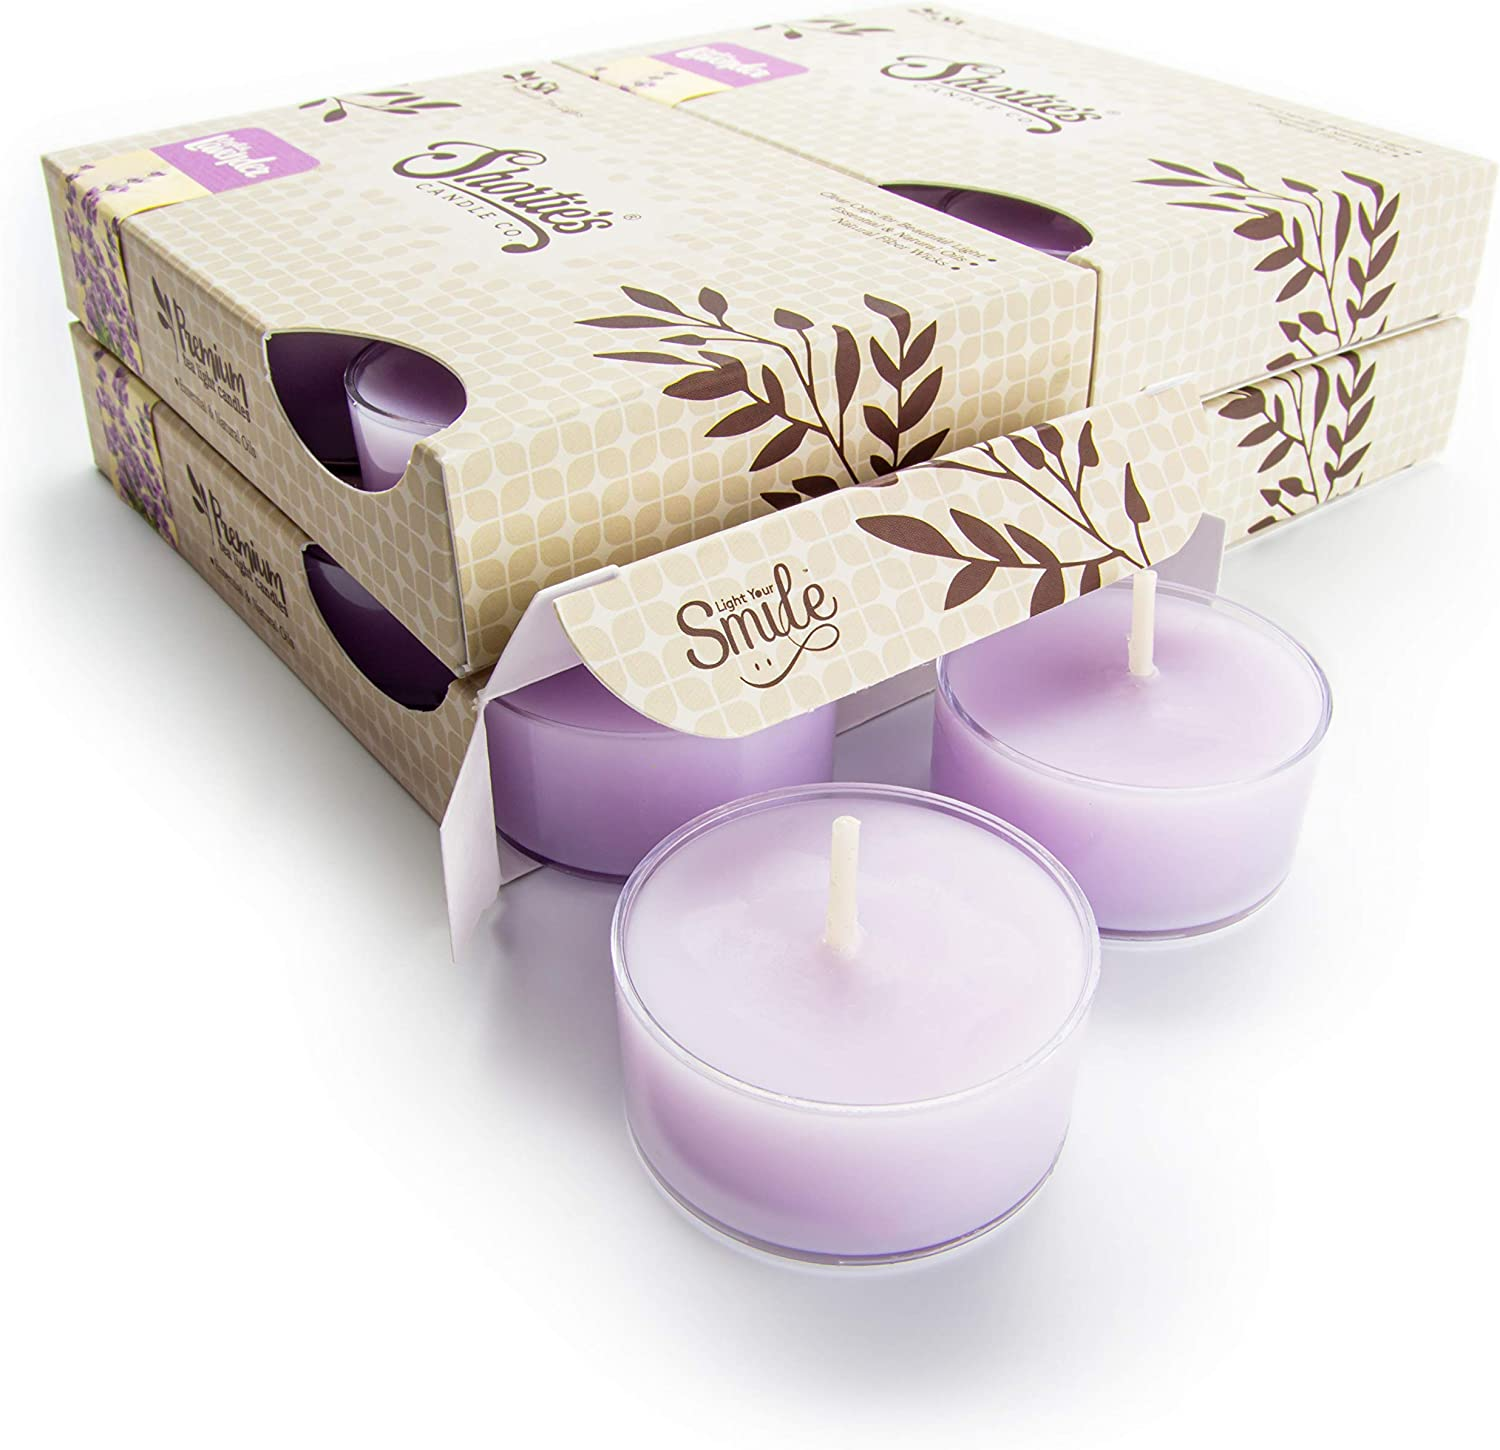 Super sale period limited Pure English Lavender Tealight Candles El Paso Mall 24 Pack Purple Bulk High